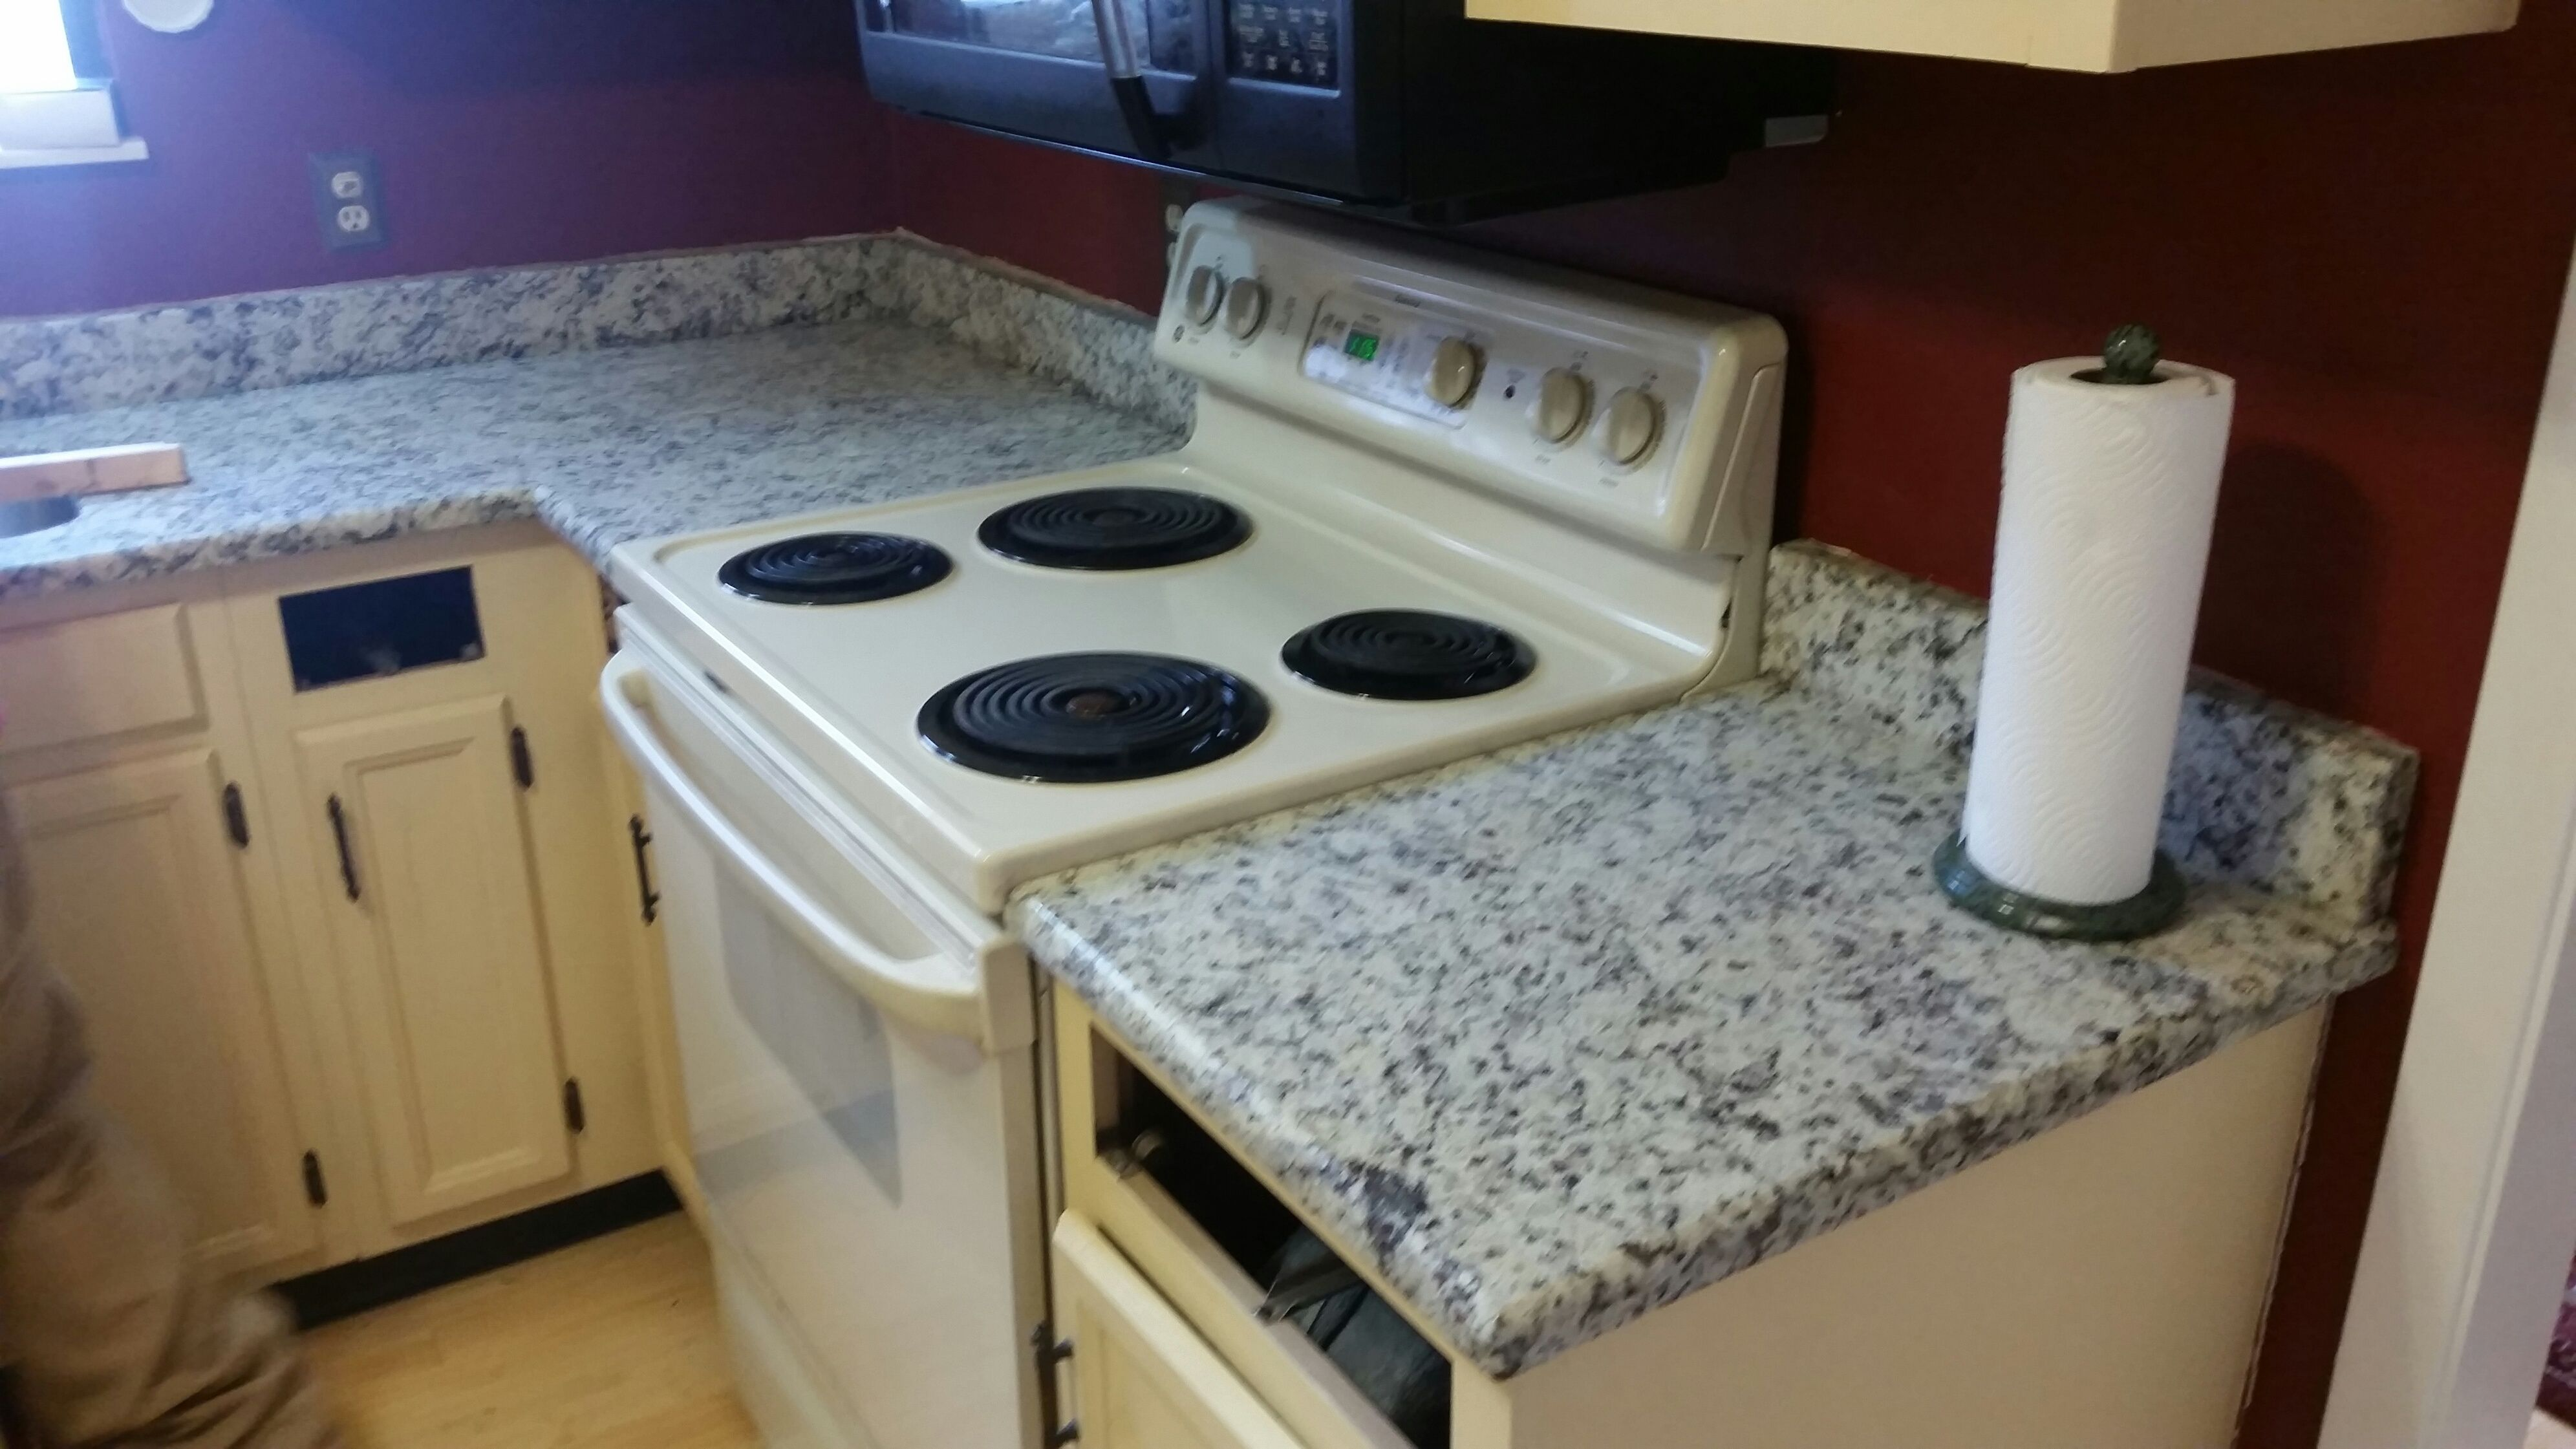 Giallo Fiesta Granite Kitchen Countertops For The James Family! Knoxvilleu0027s  Stone Interiors. Showroom Located